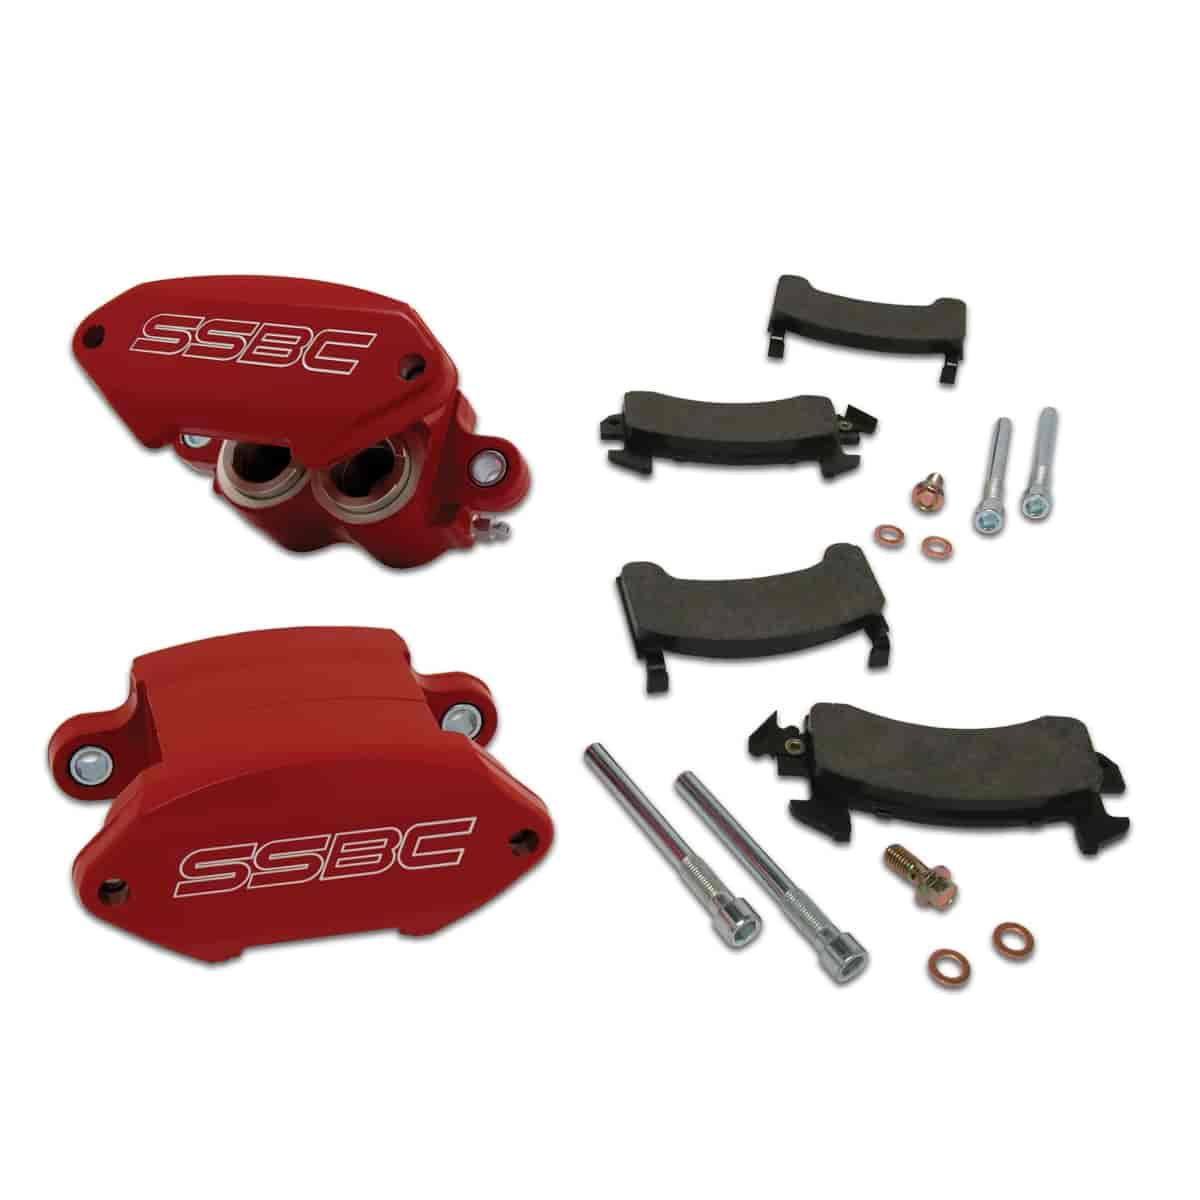 SSBC A181R - Stainless Steel Brakes Sport Twin Quick Change Caliper Kits